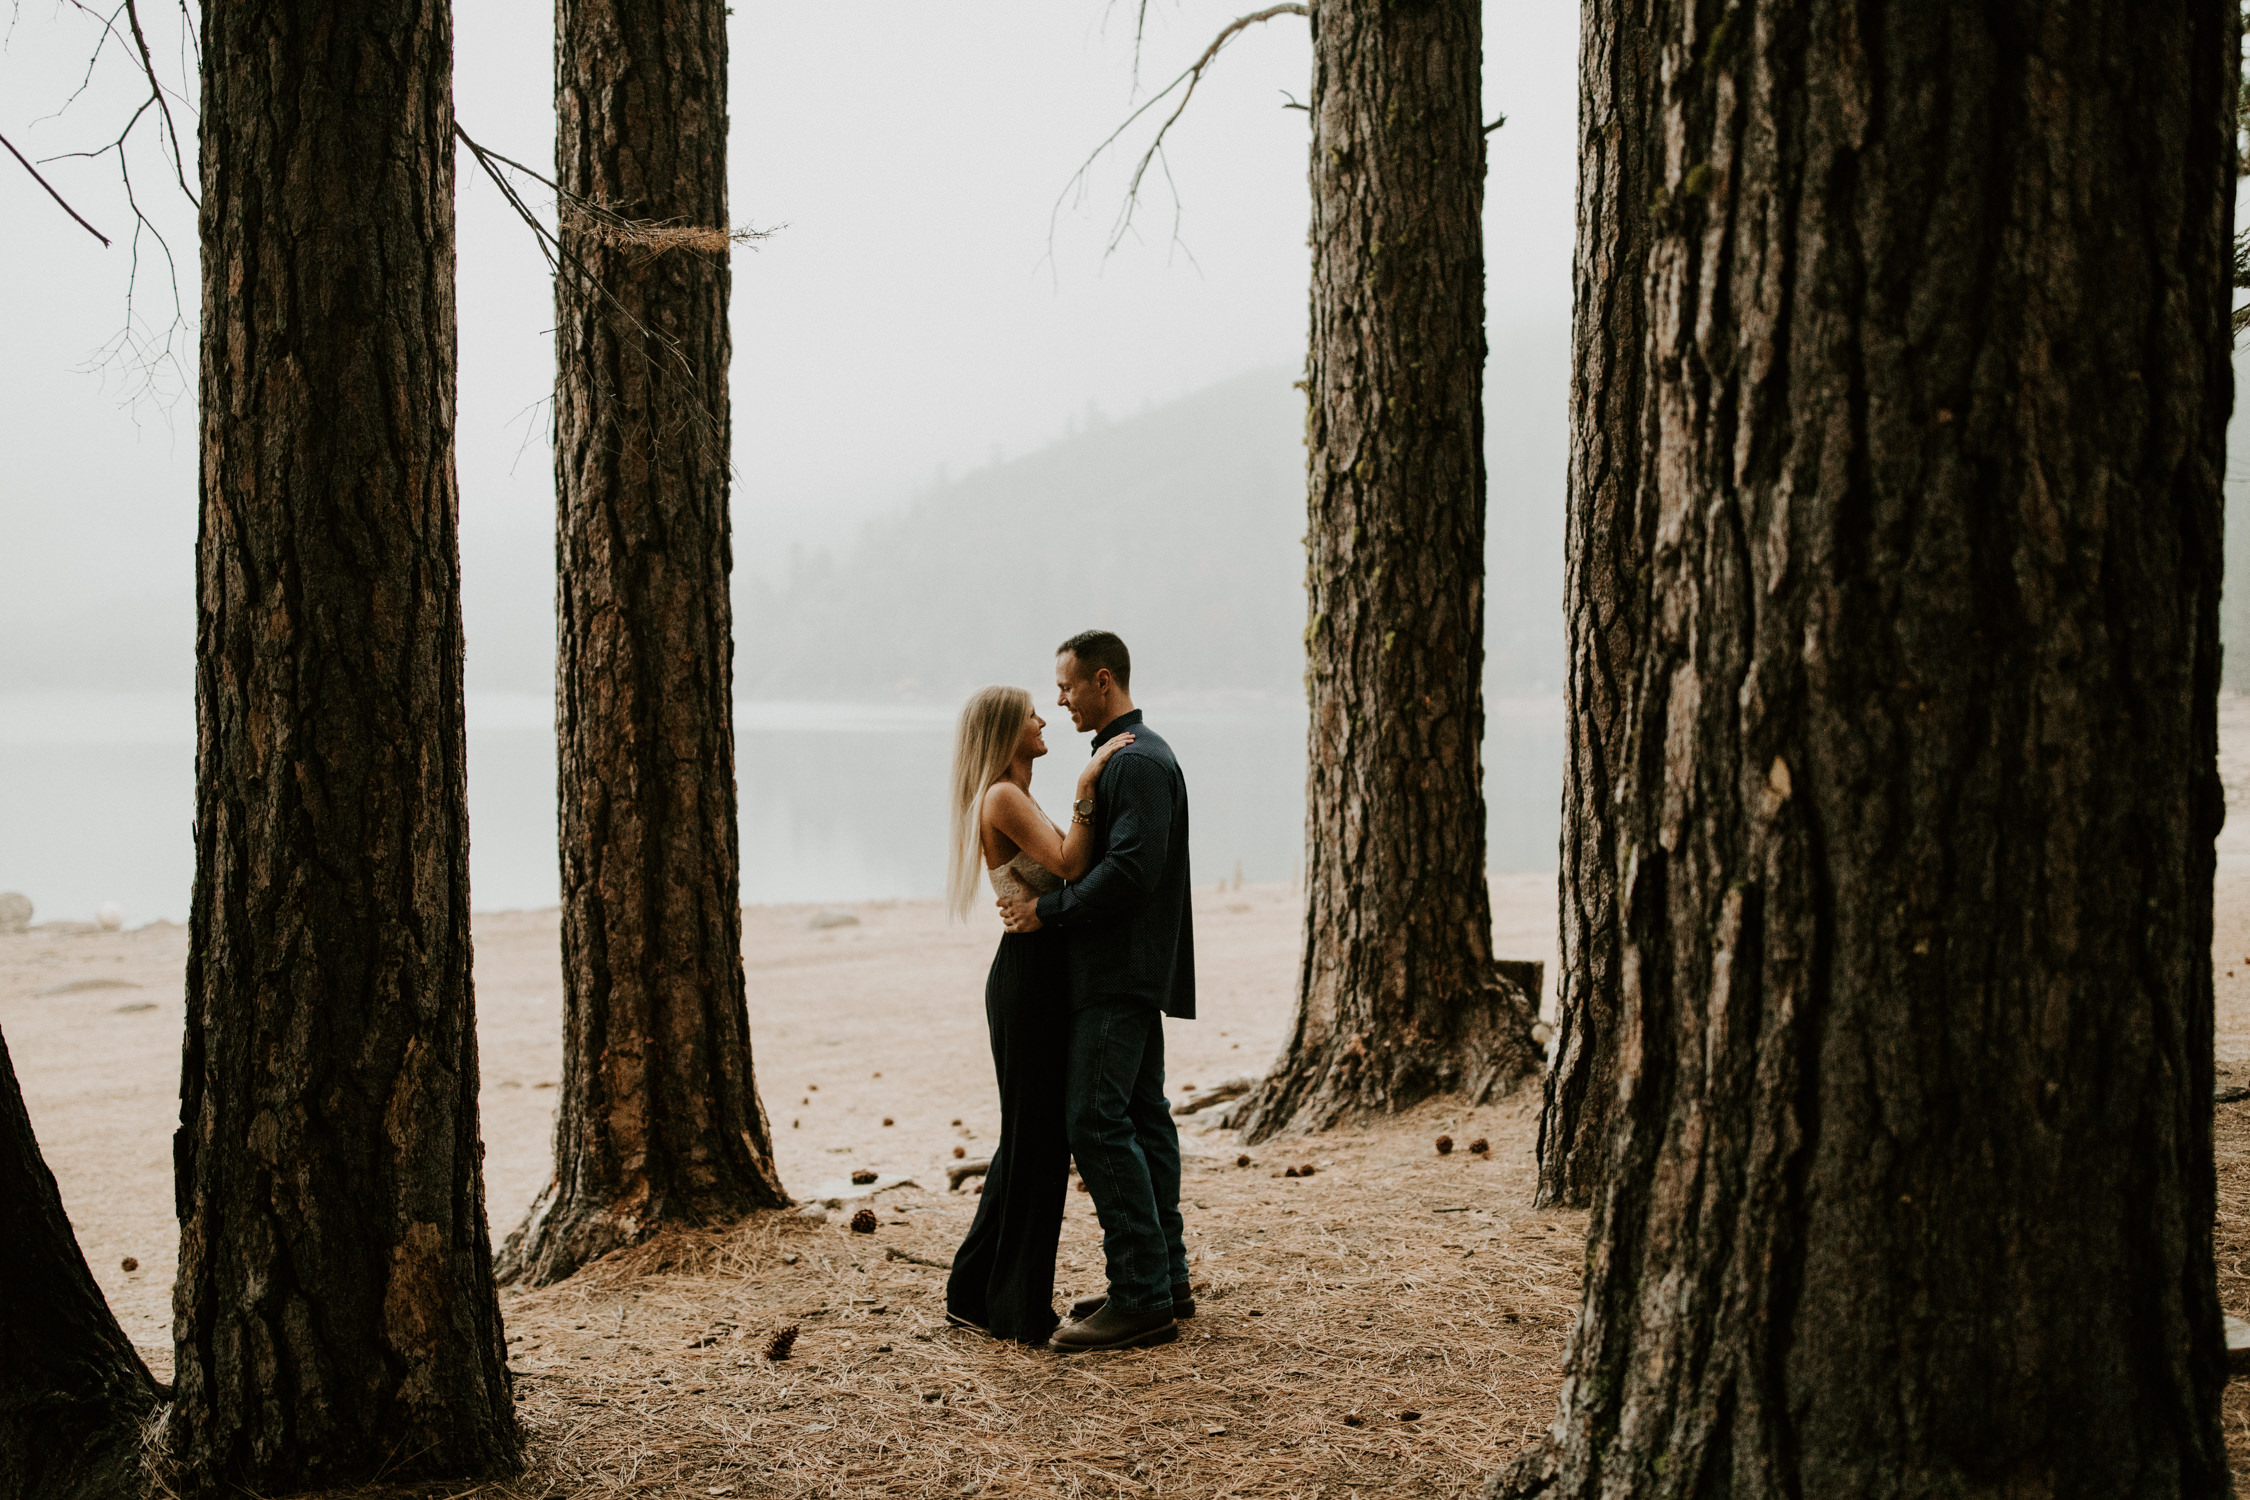 couple-intimate-engagement-session-northern-california-10.jpg